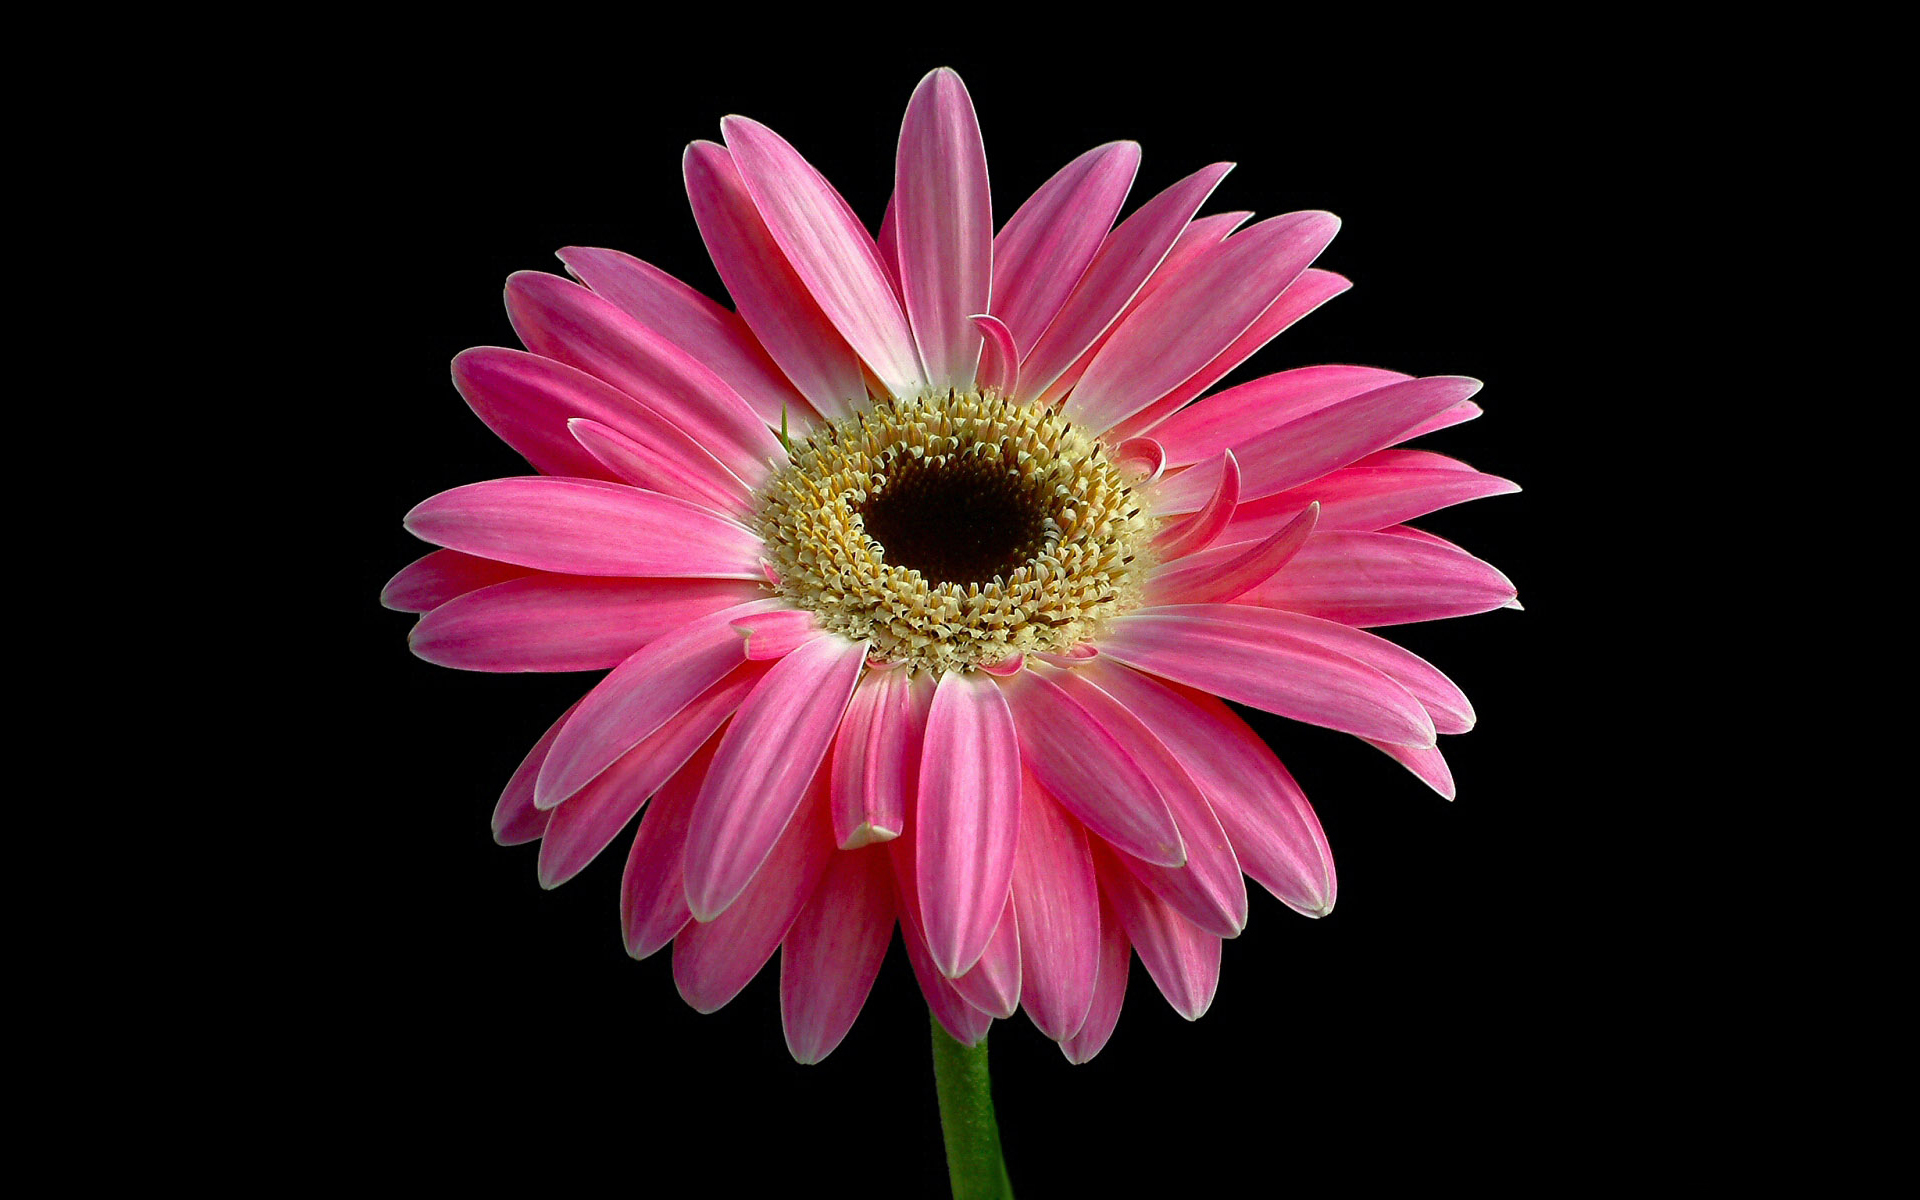 Pink Flower Wallpaper